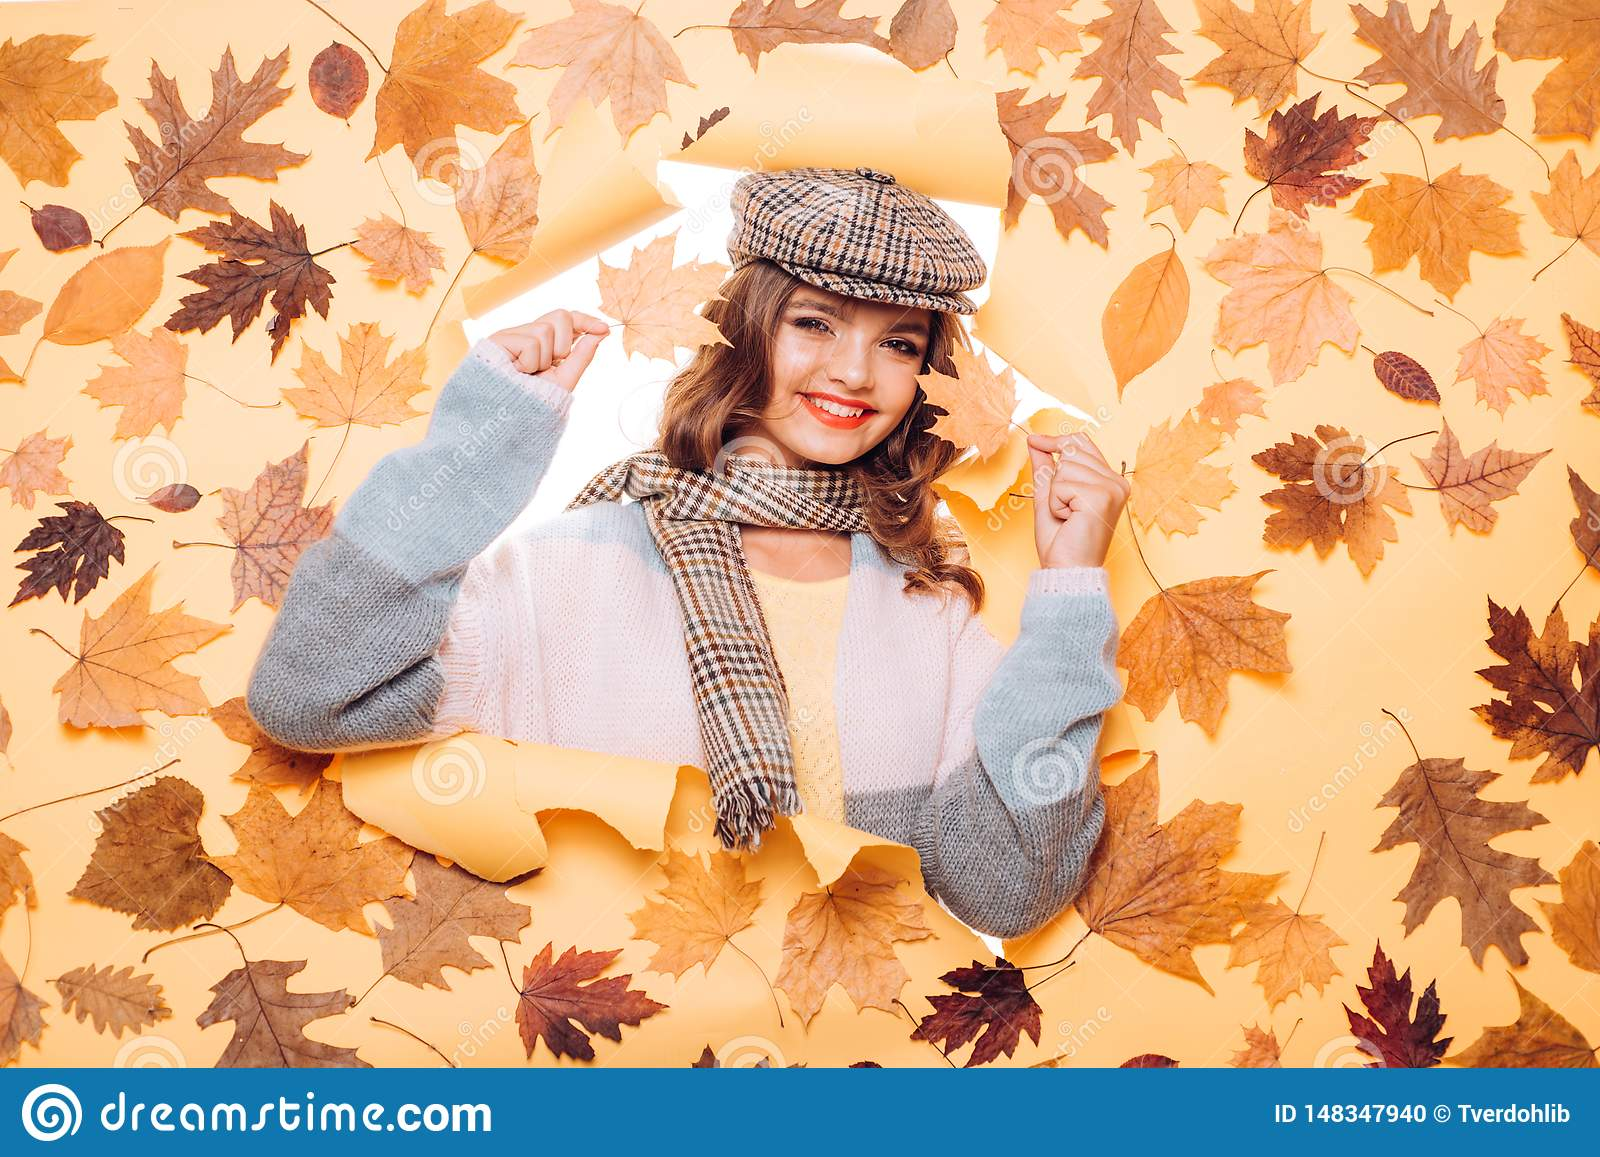 A must have for fall. Pretty woman wear autumn fashion accessories. Casual fashion trends for fall. Fashion girl look